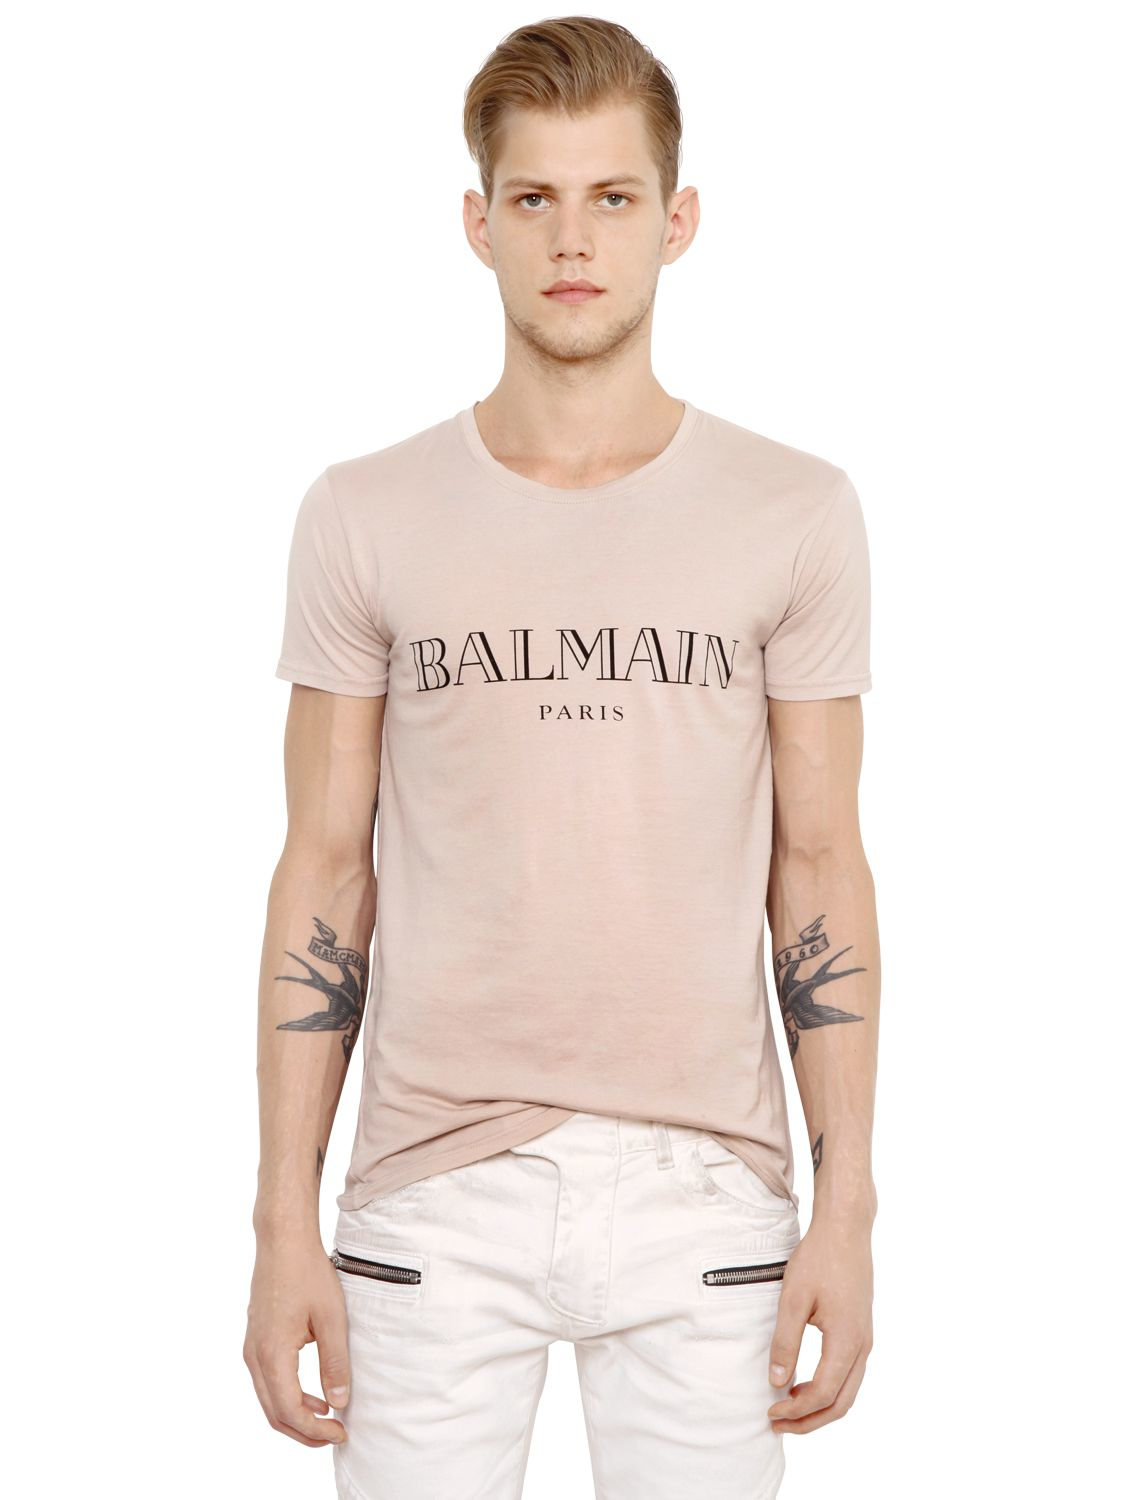 balmain logo printed cotton jersey t shirt in natural for men lyst. Black Bedroom Furniture Sets. Home Design Ideas